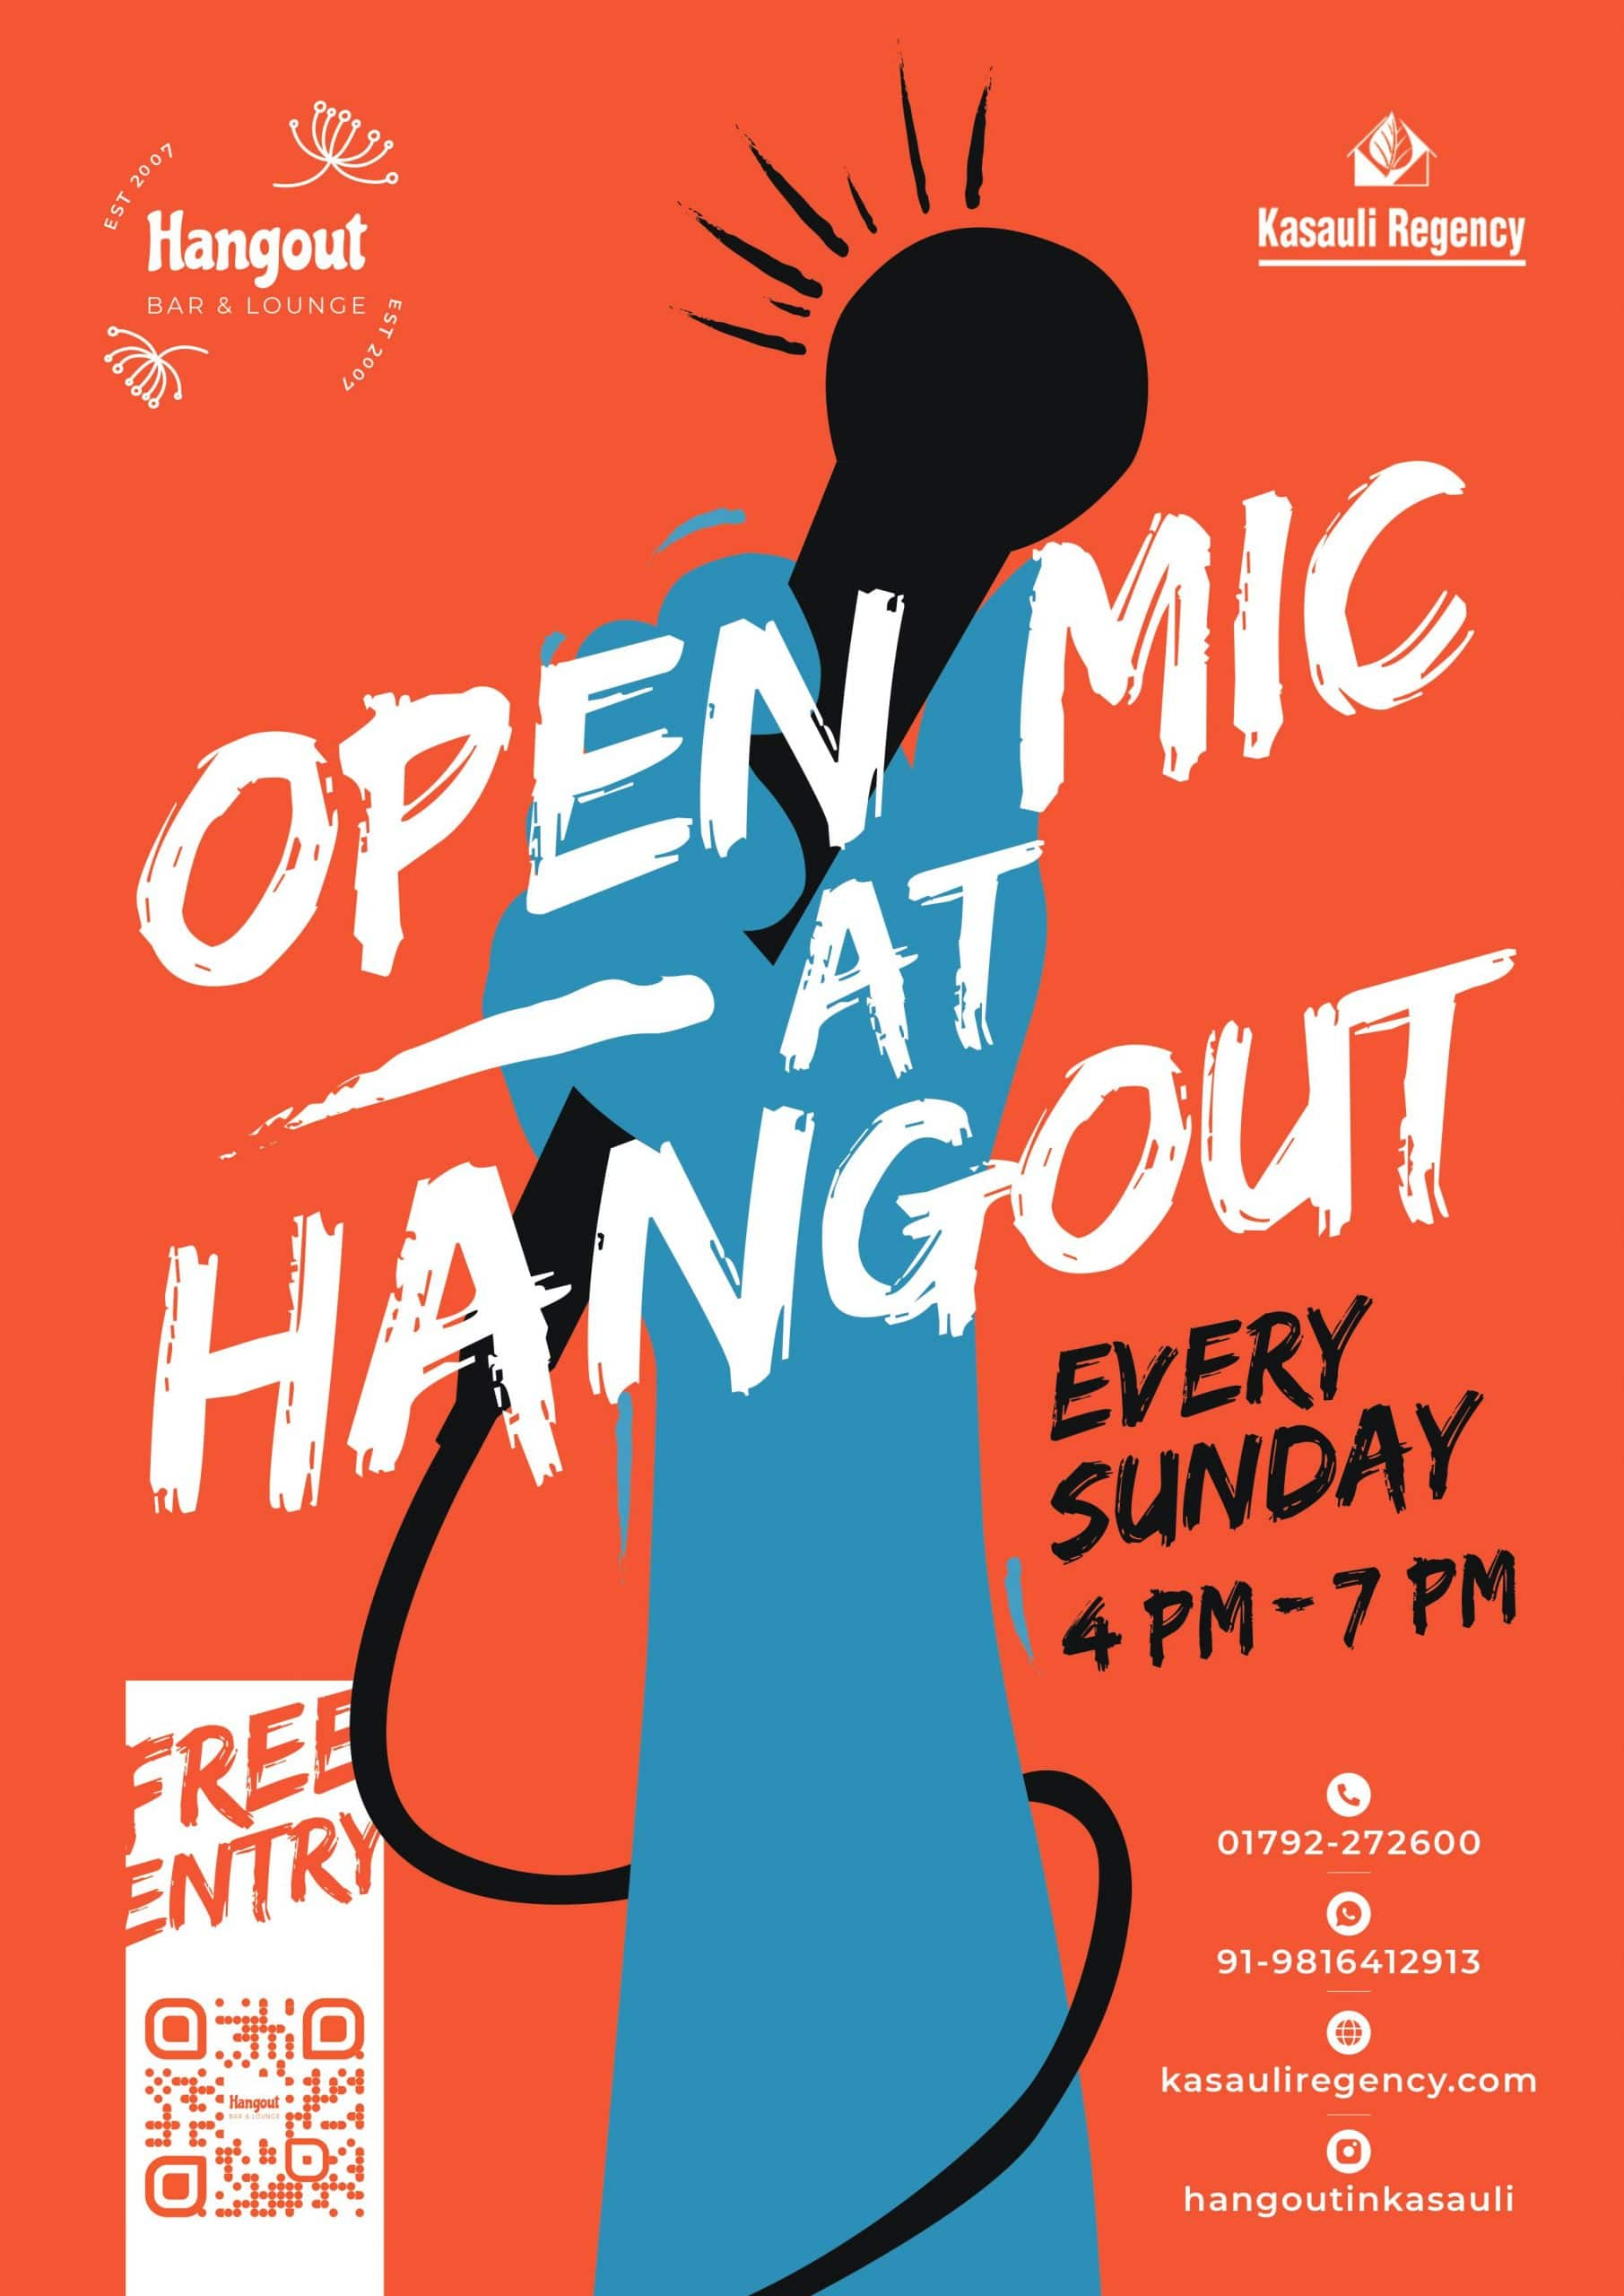 Open Mic is one the Facilities in Hotel Kasauli Regency